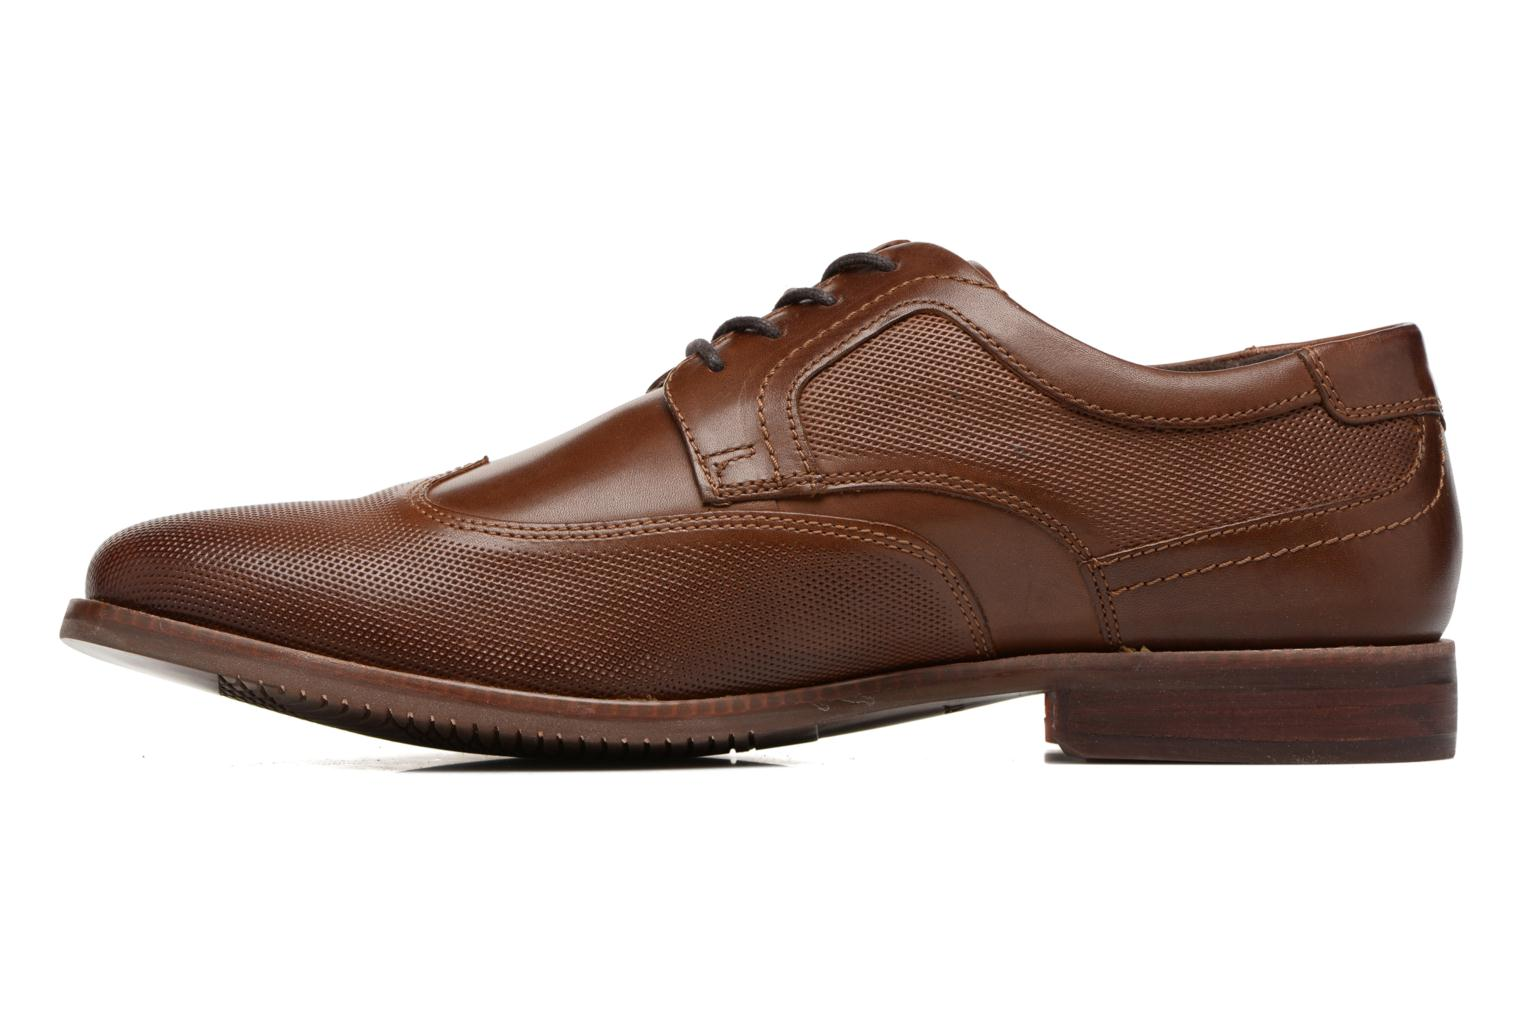 Chaussures à lacets Rockport SP Perf Wingtip Marron vue face